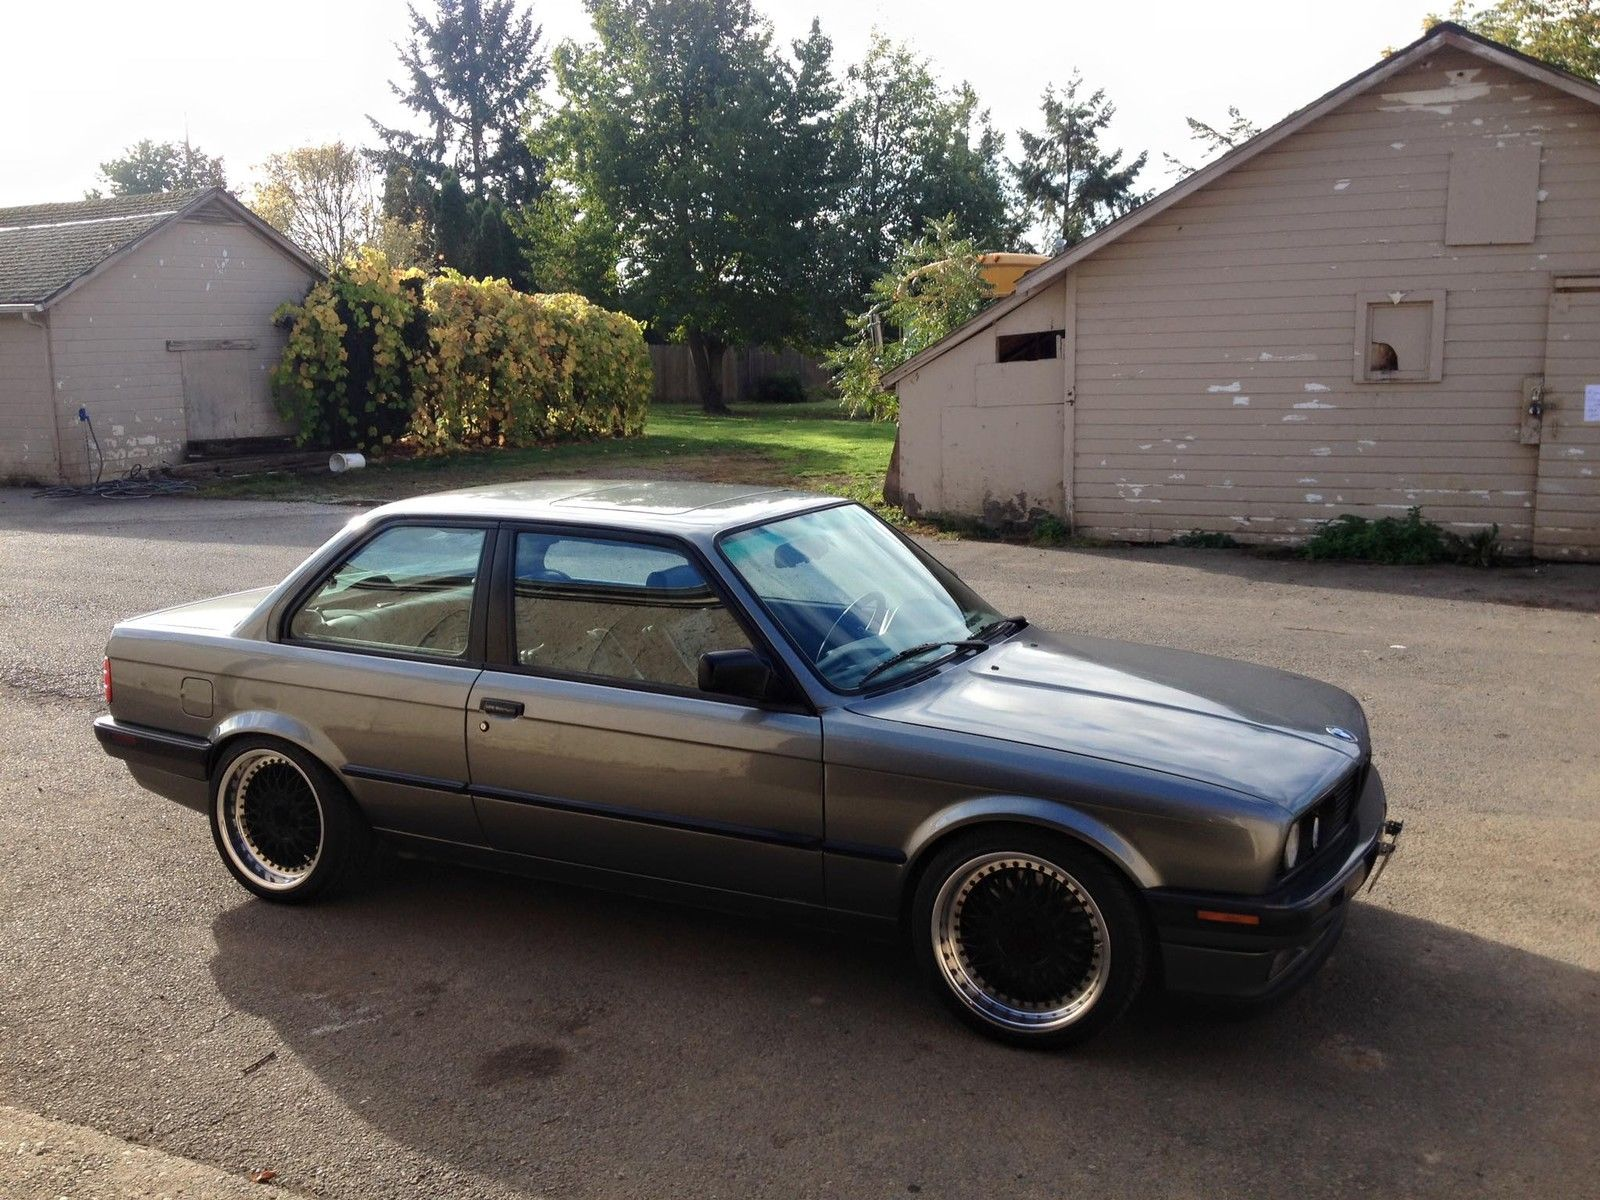 Daily Turismo E30 Sleeper 1988 Bmw 325is